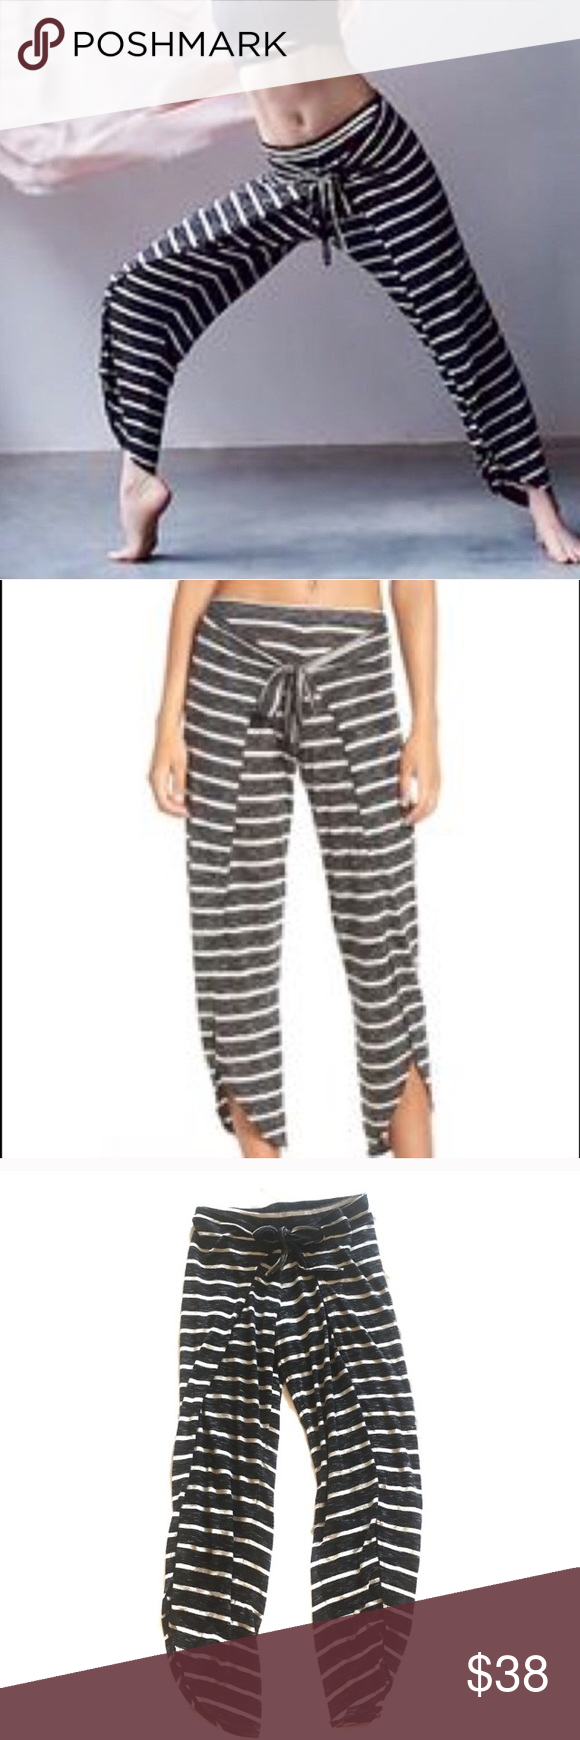 Free People Nothing to Lose Pant Womens Apparel at Vickerey